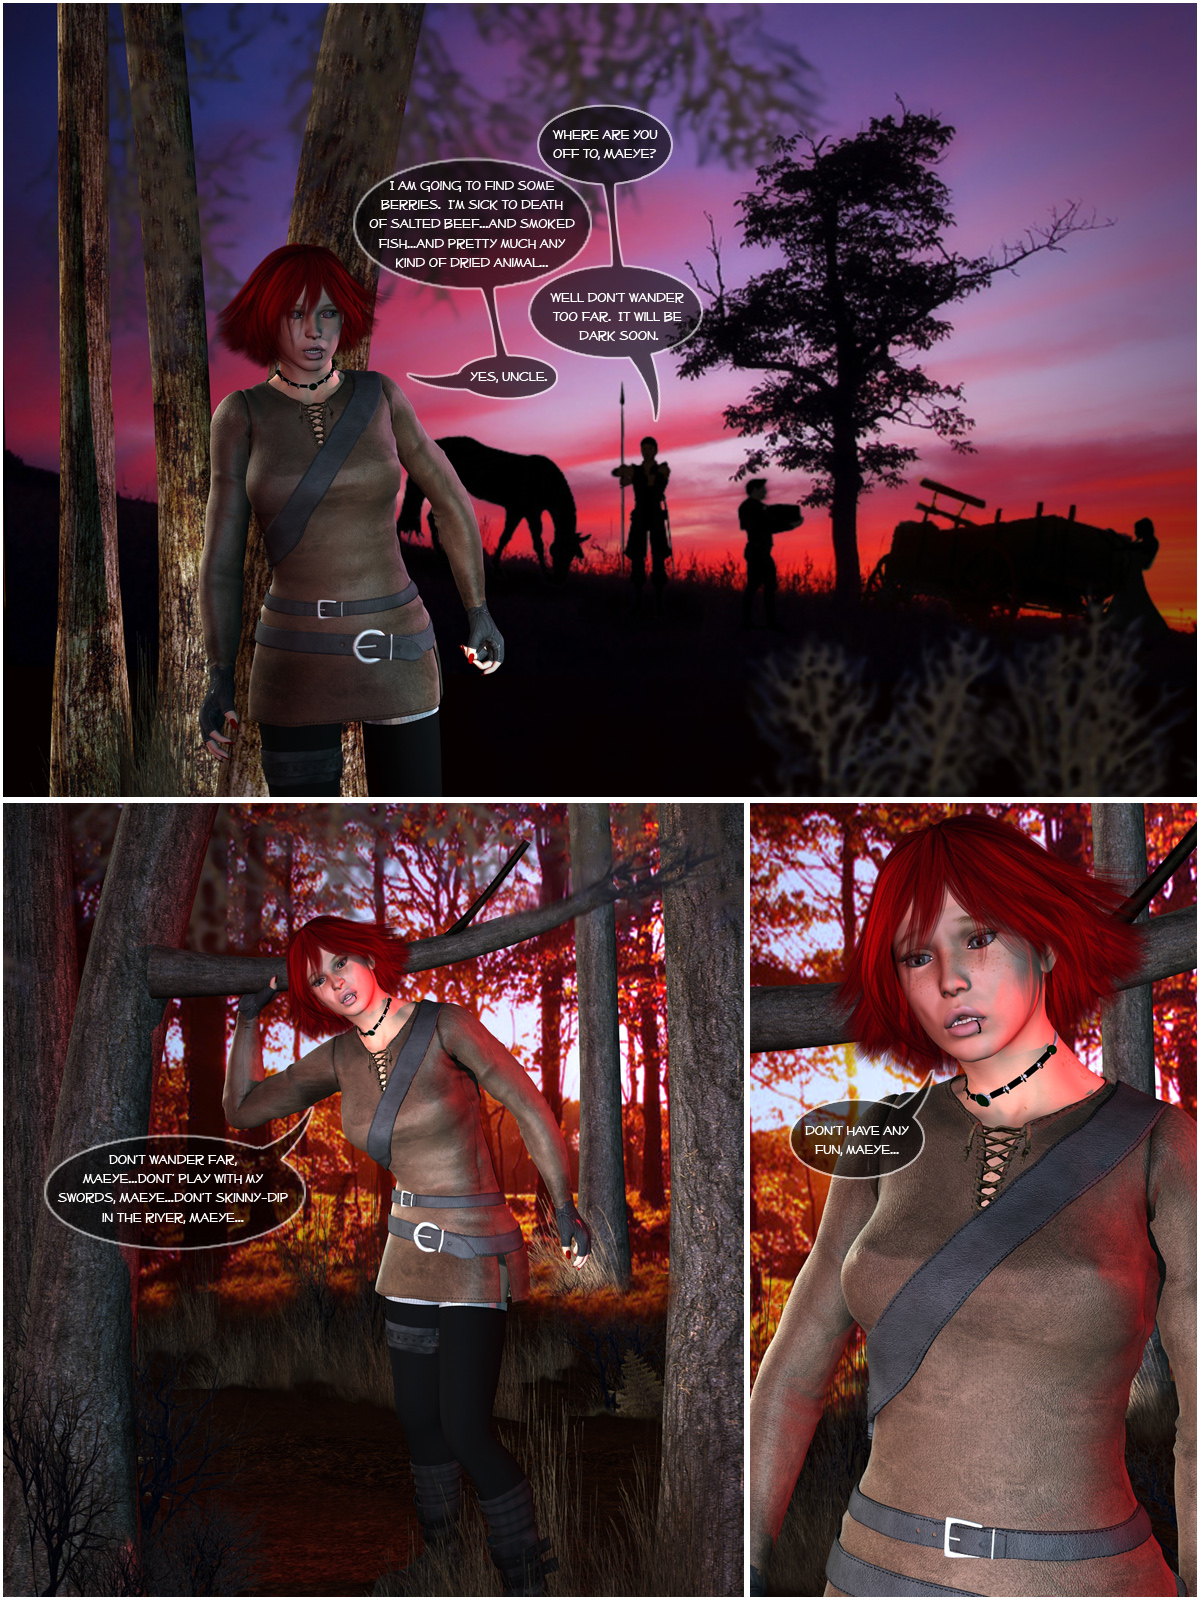 Book 1, Chapter 1, Page 3